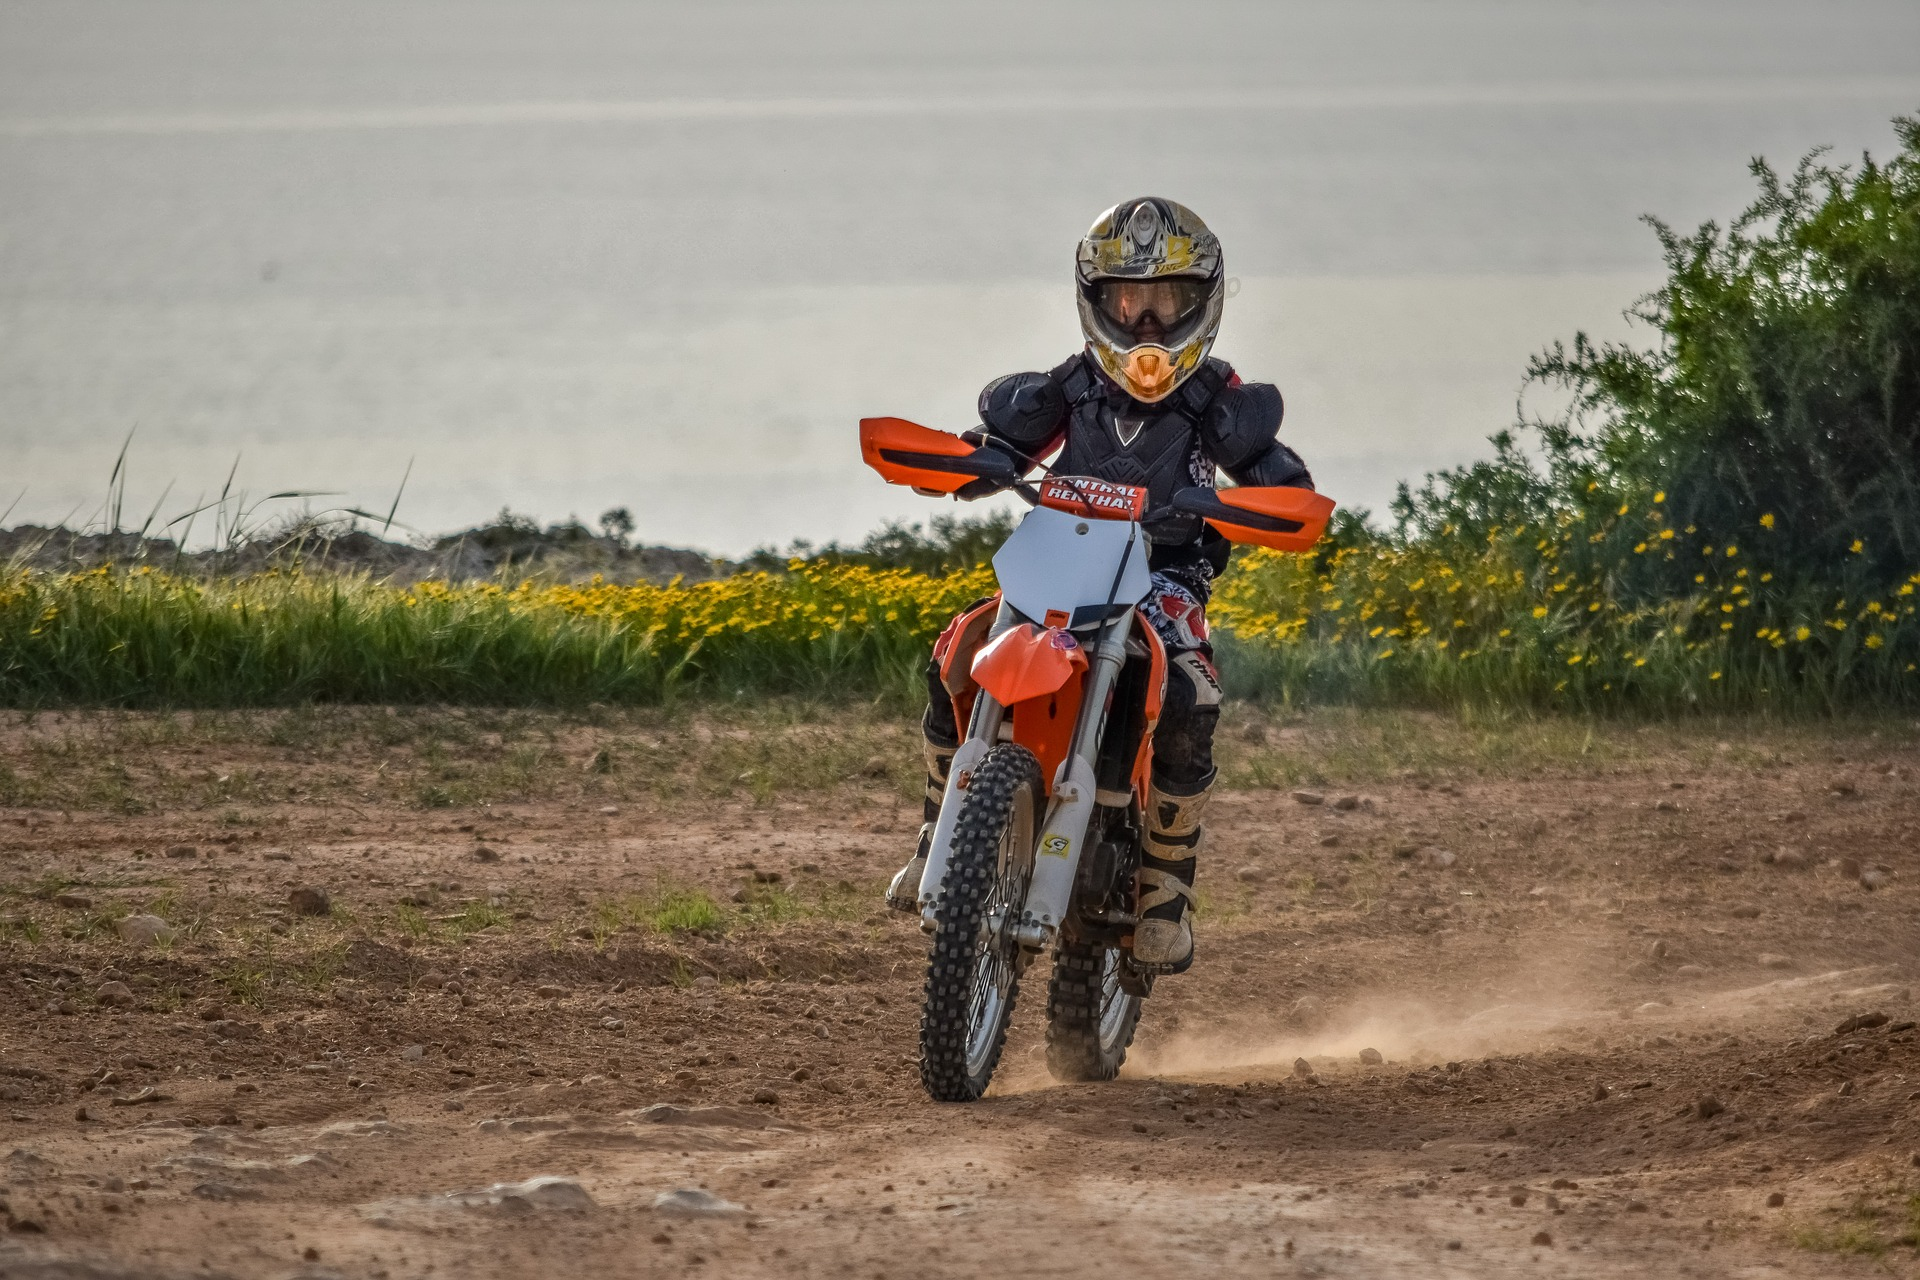 Katherine Off-Road Motorcycle Sports Club